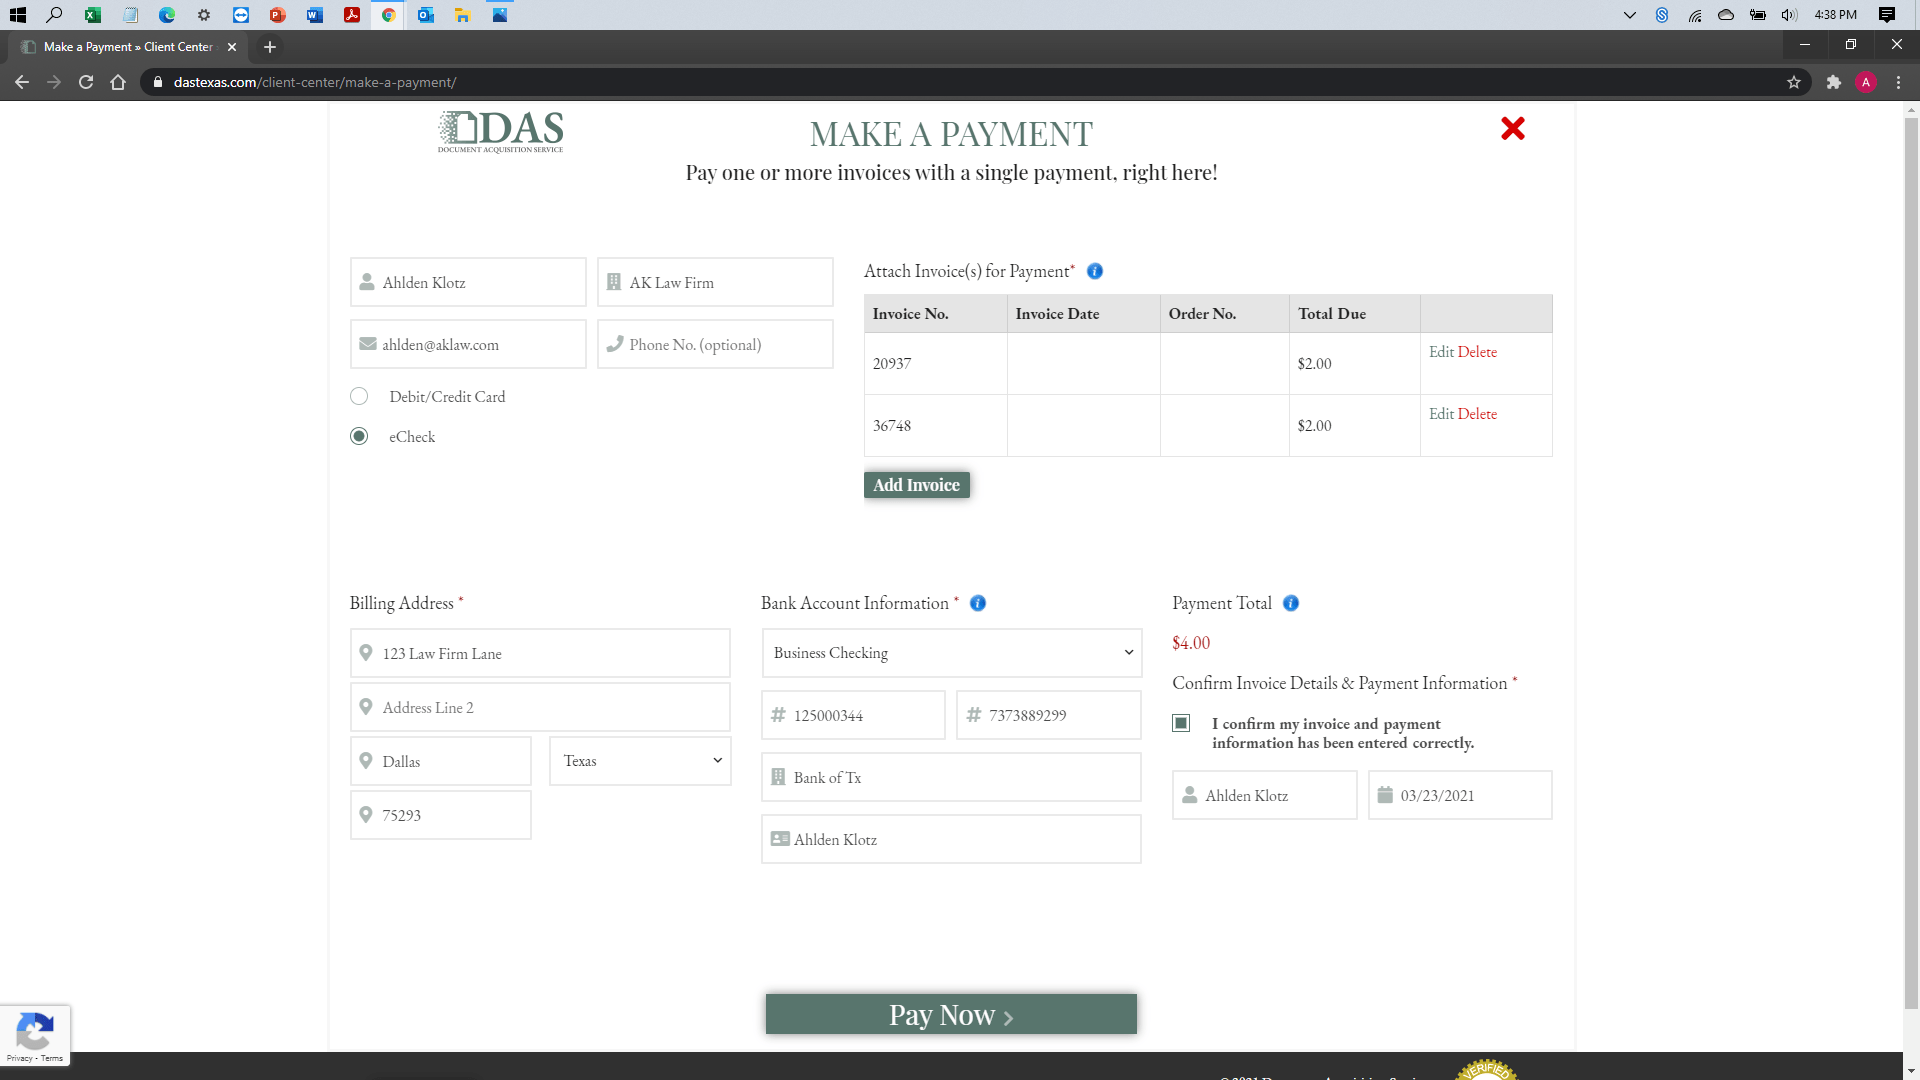 [help docs] Make a Payment - eCheck - Ready to Submit